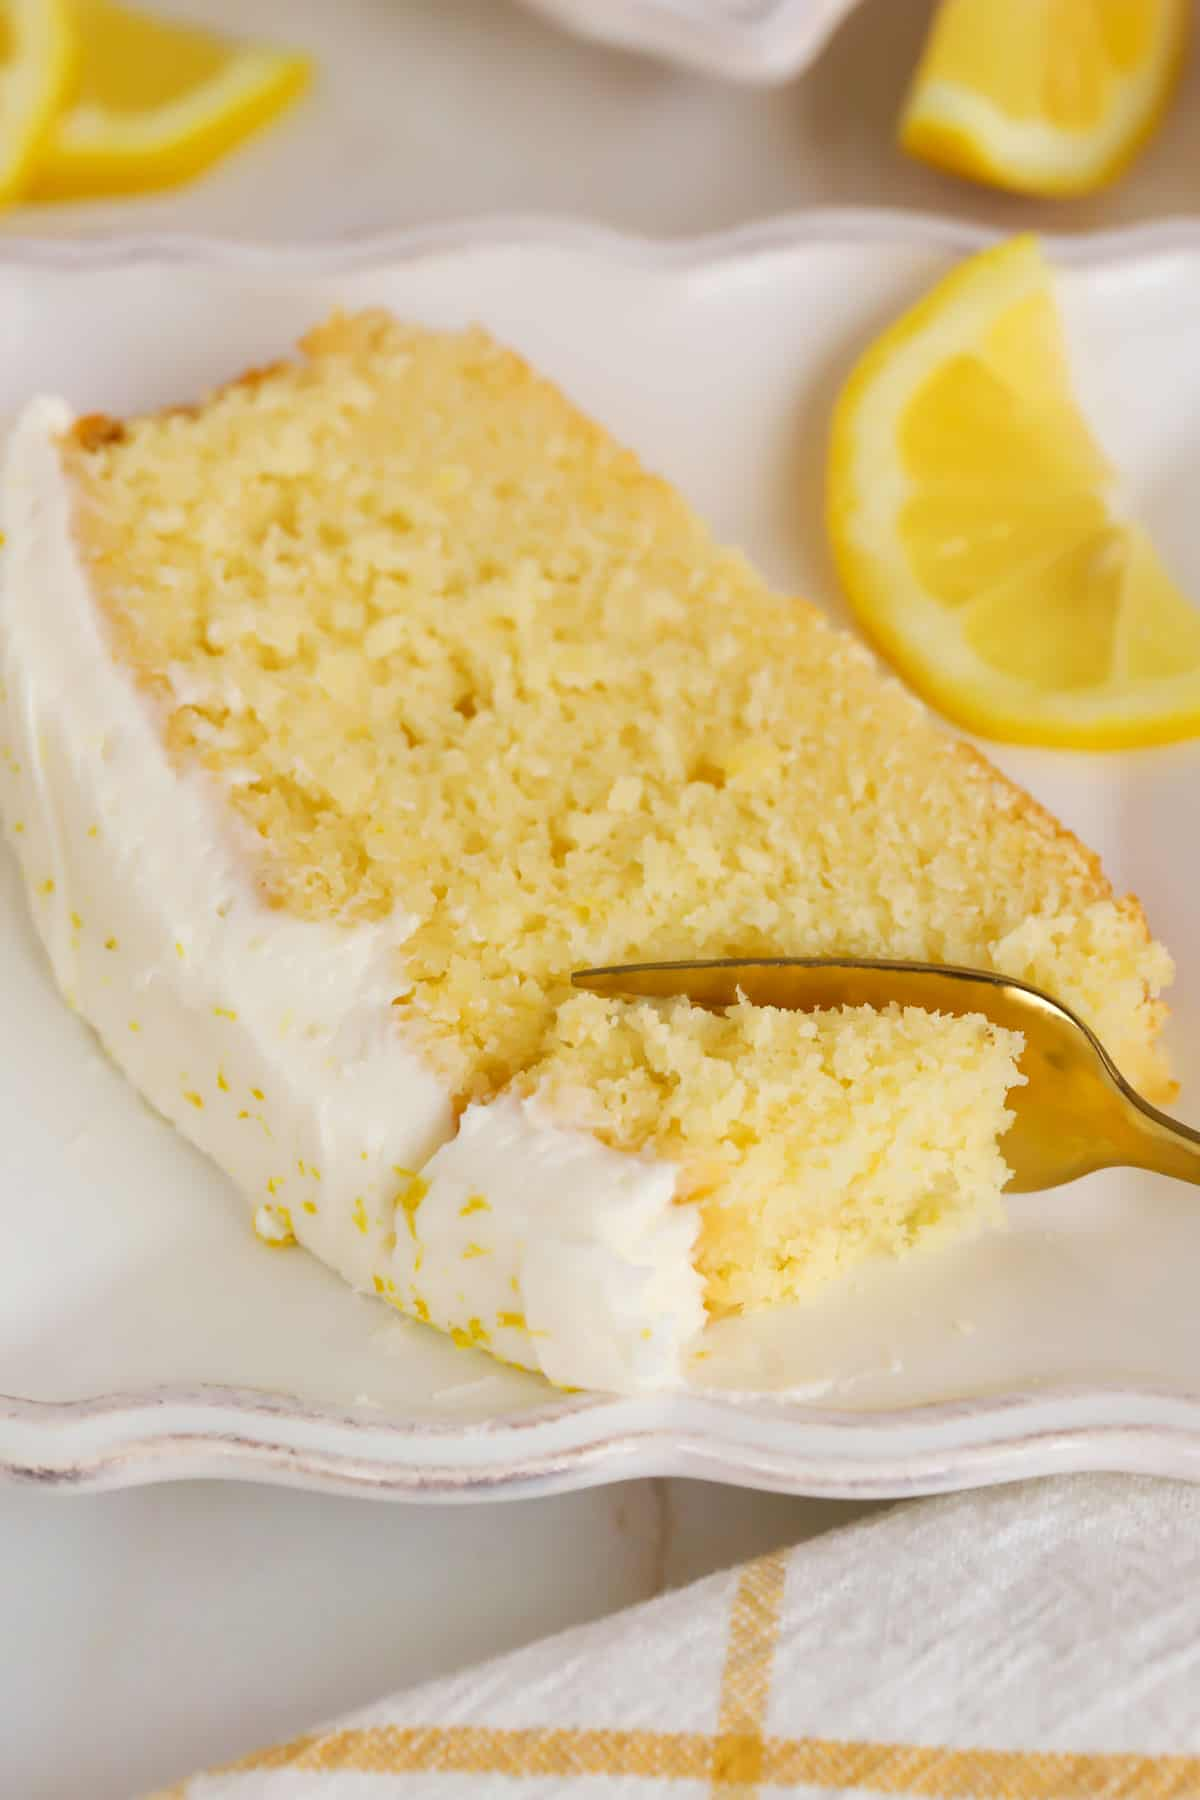 Slice of lemon loaf cake on a white plate with a gold fork.